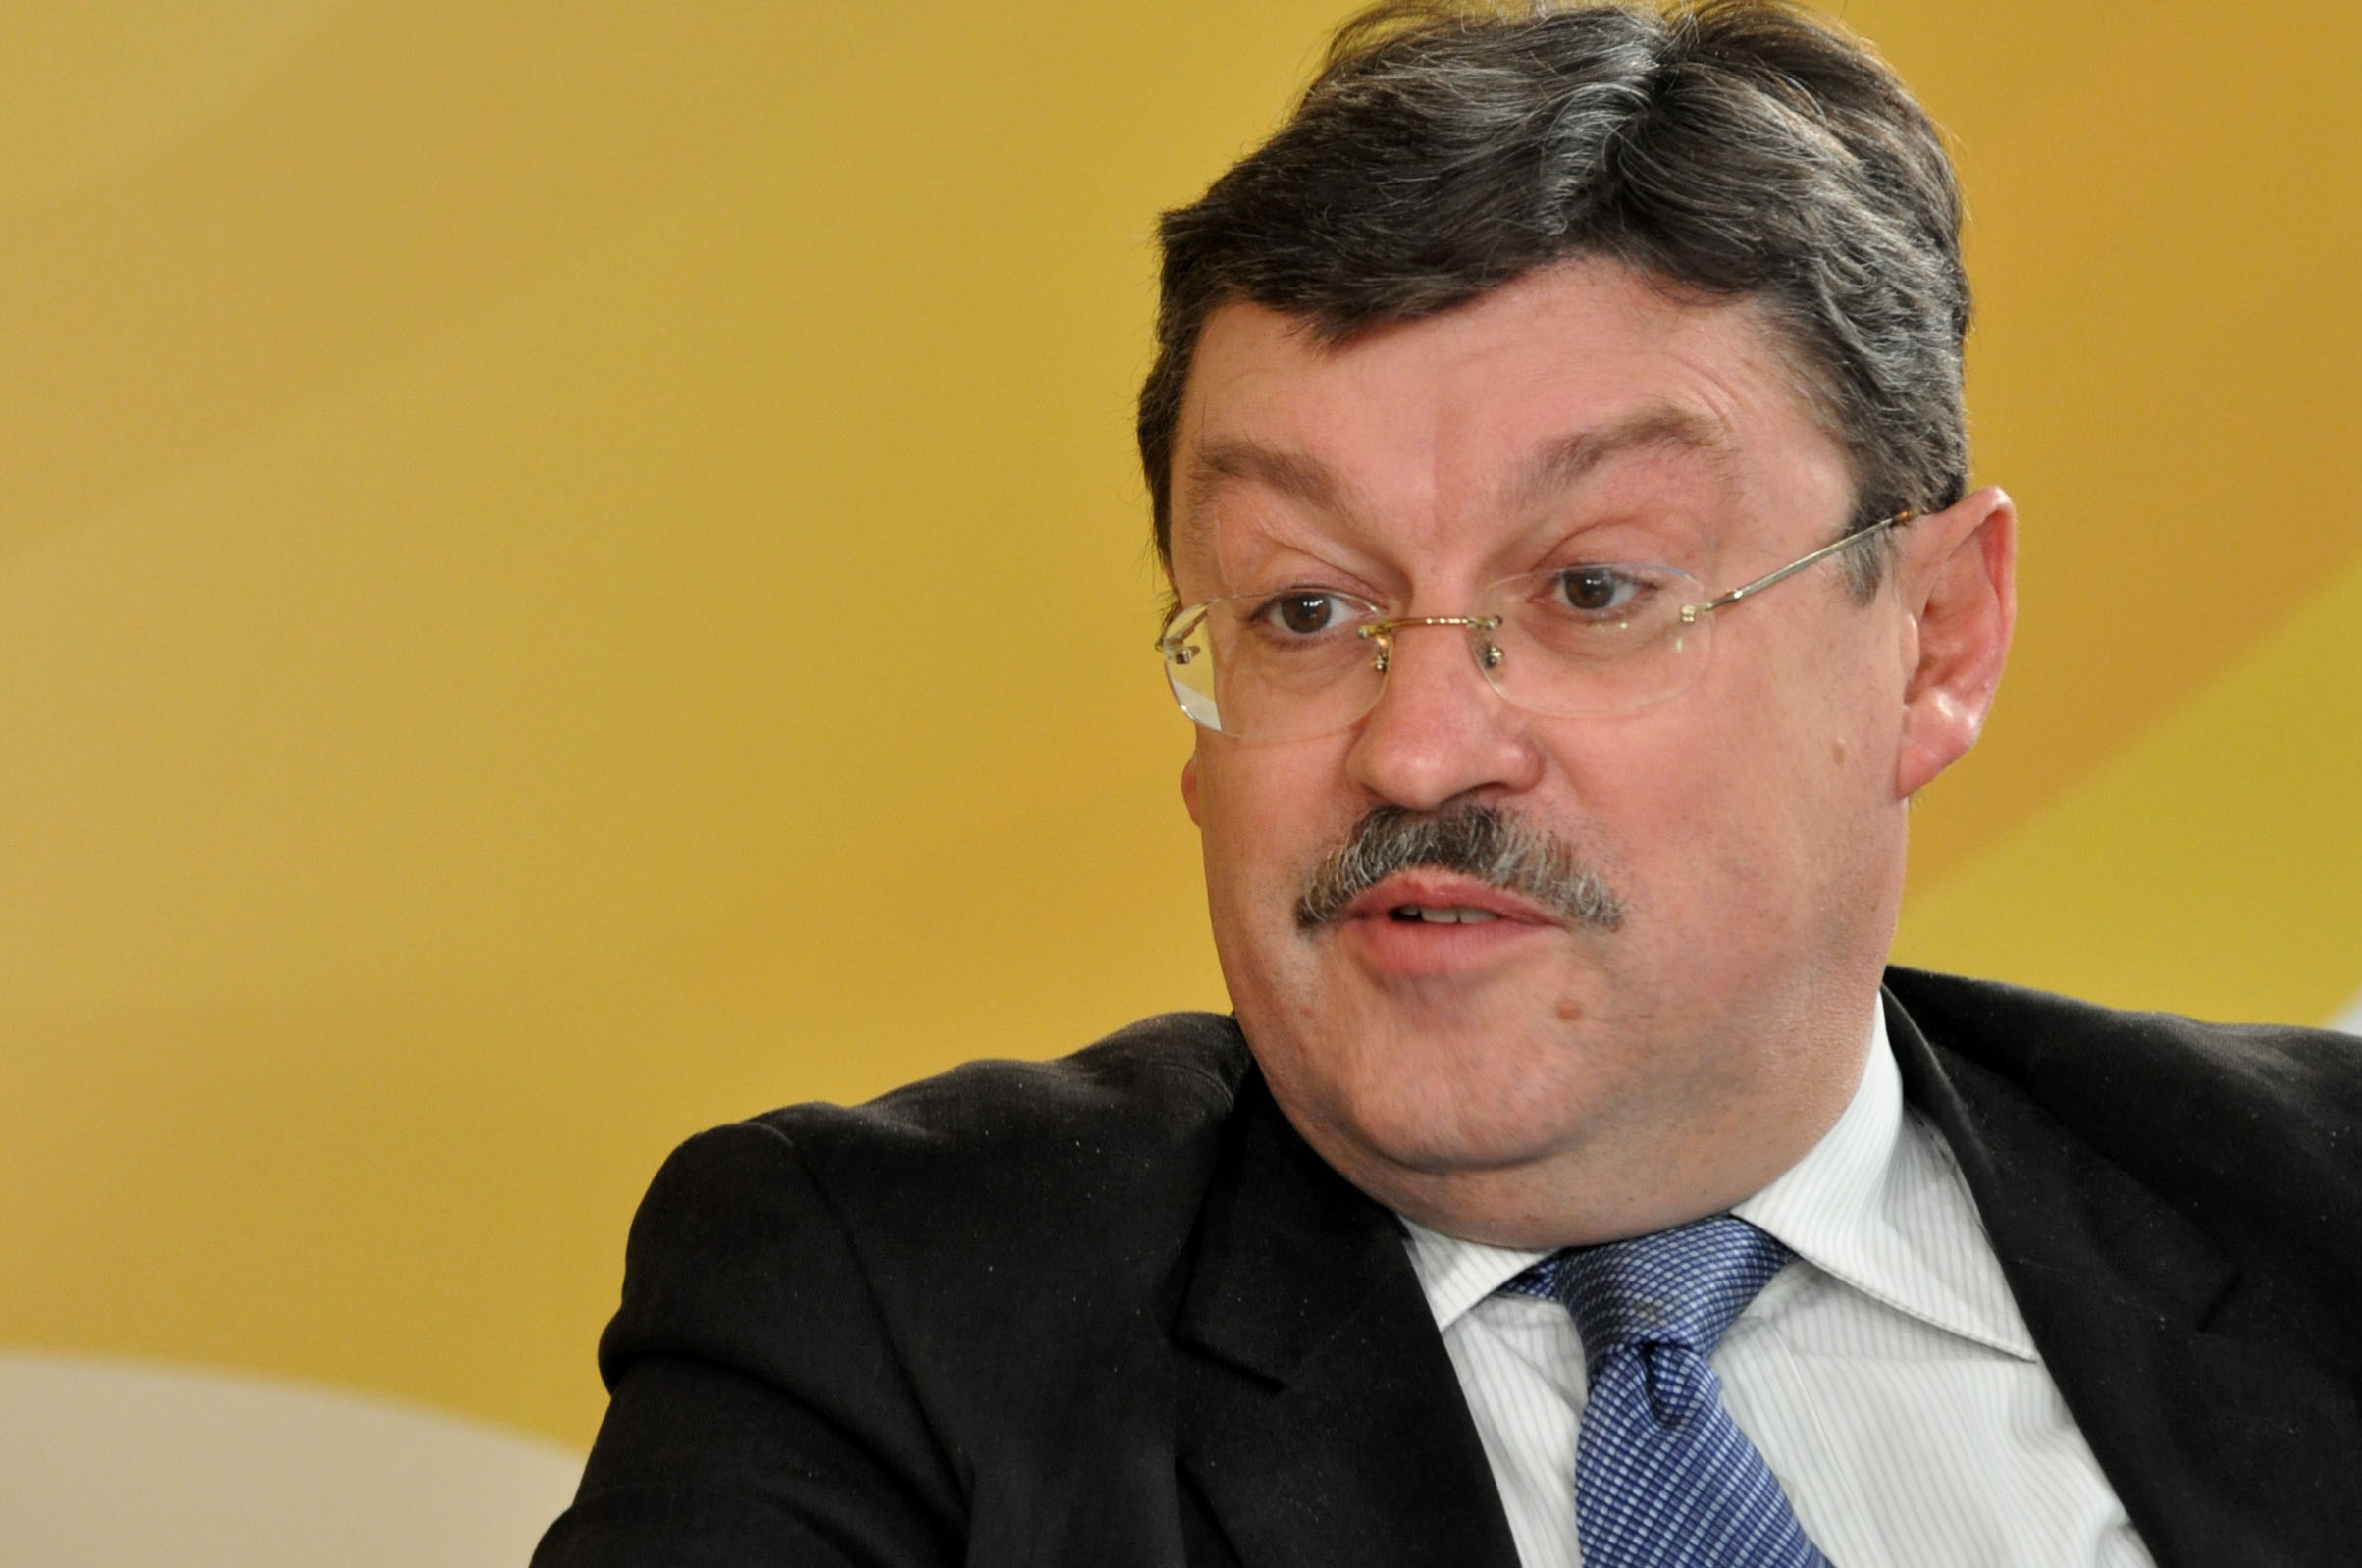 IBNA/Interview – Dacic's ambition reminiscent of Tito